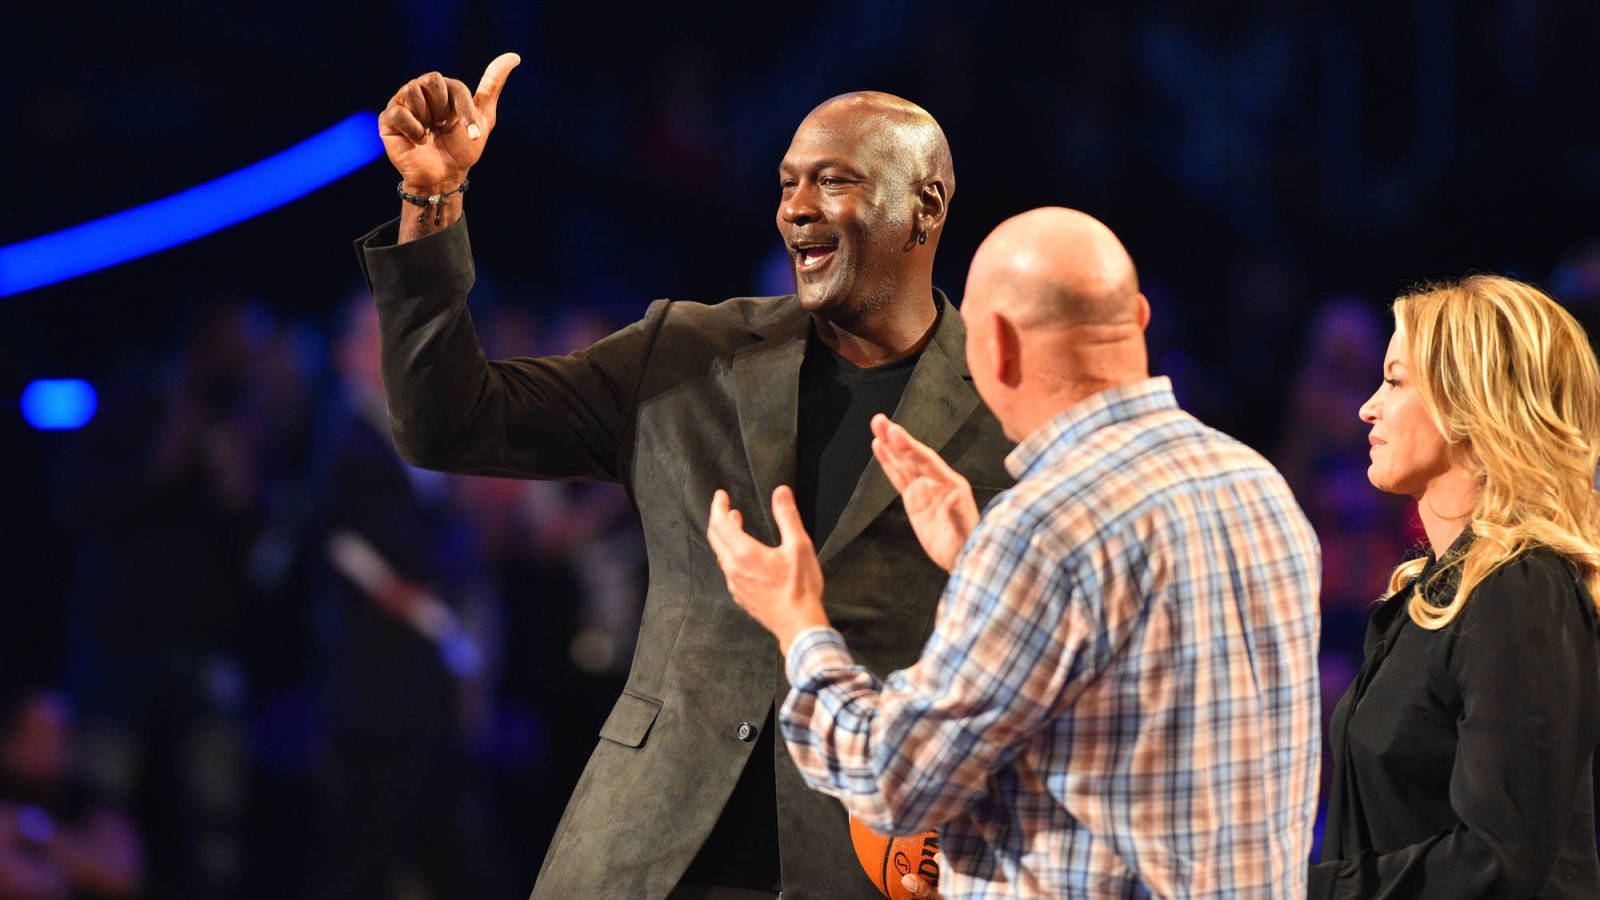 Michael Jordan S Daughter Used Google To Find Out Why Her Dad Was So Famous Yardbarker